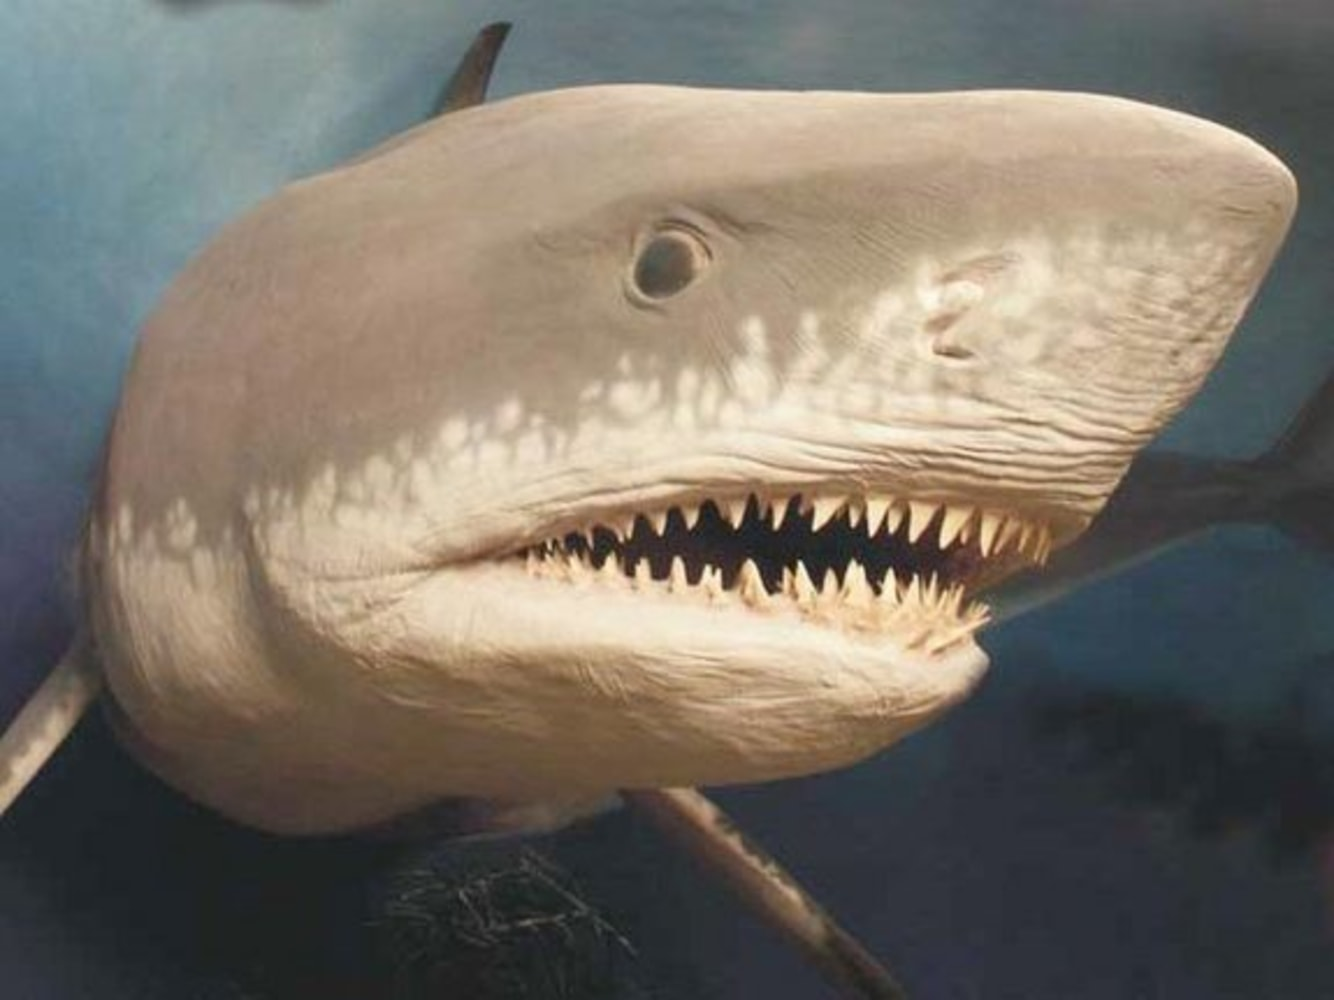 Extinct Megalodon, the largest shark ever, may have grown too big - NBC News